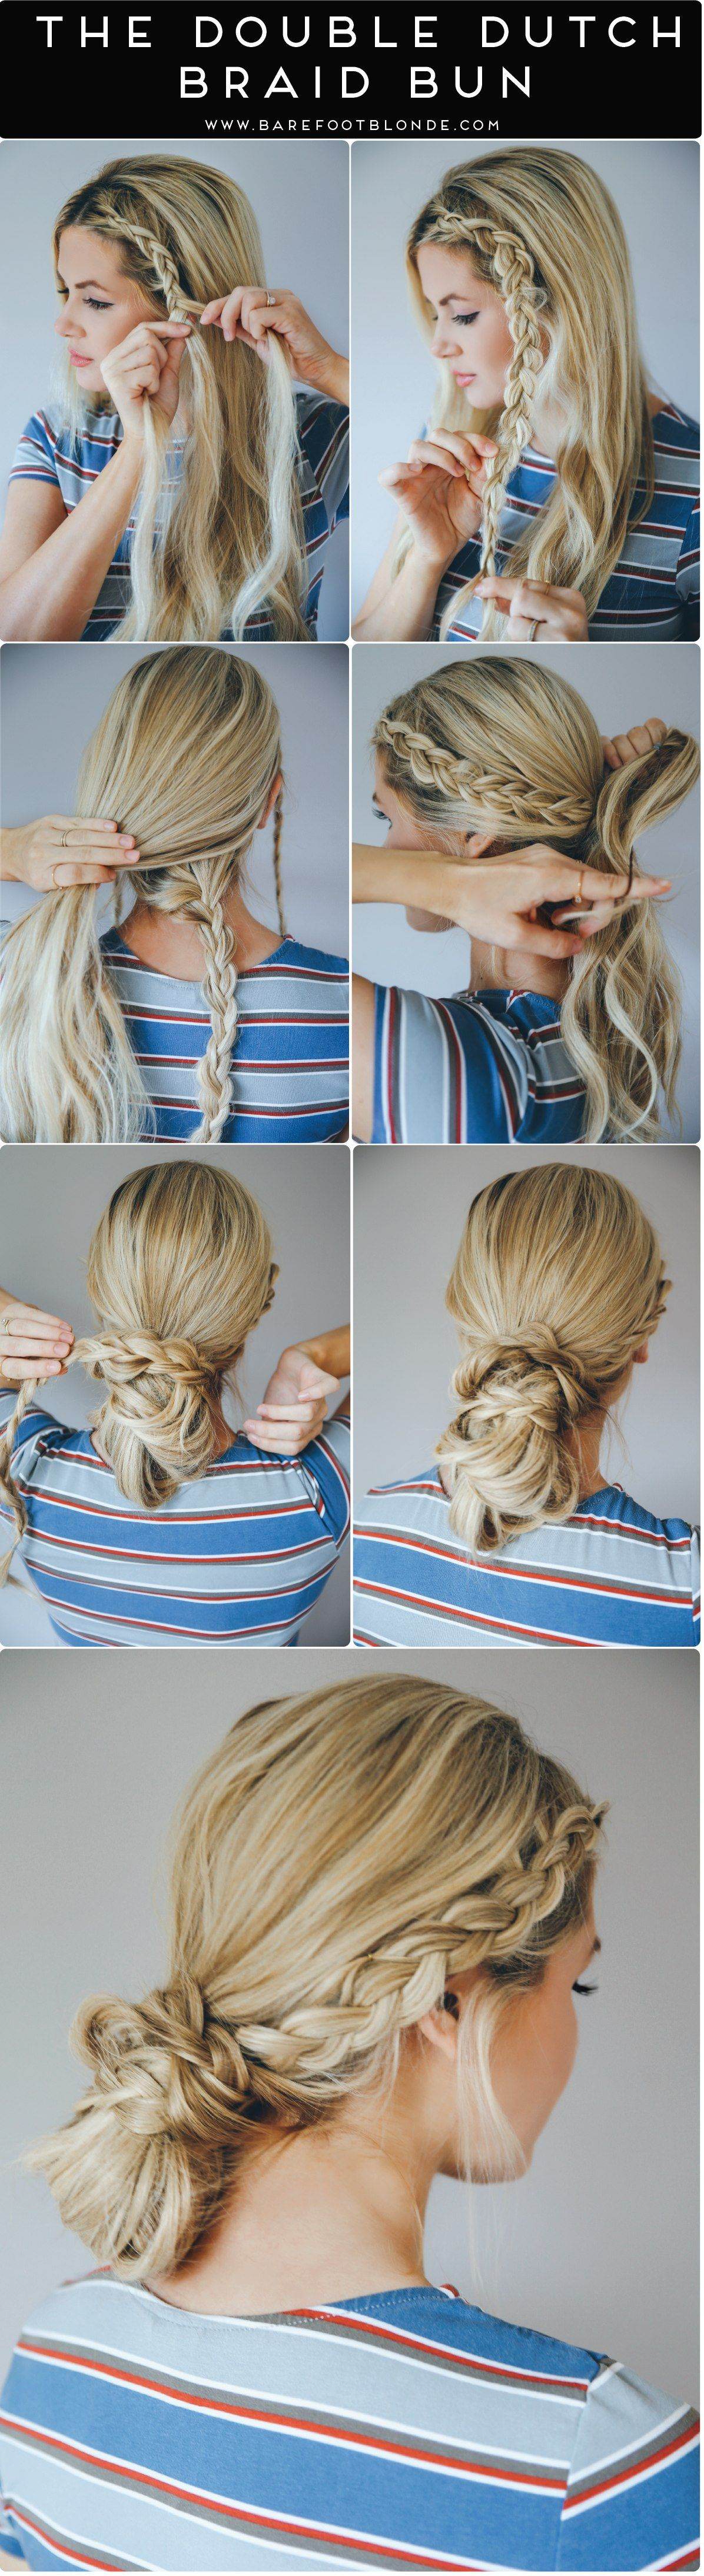 Double dutch braid bun how to hair and other girly things